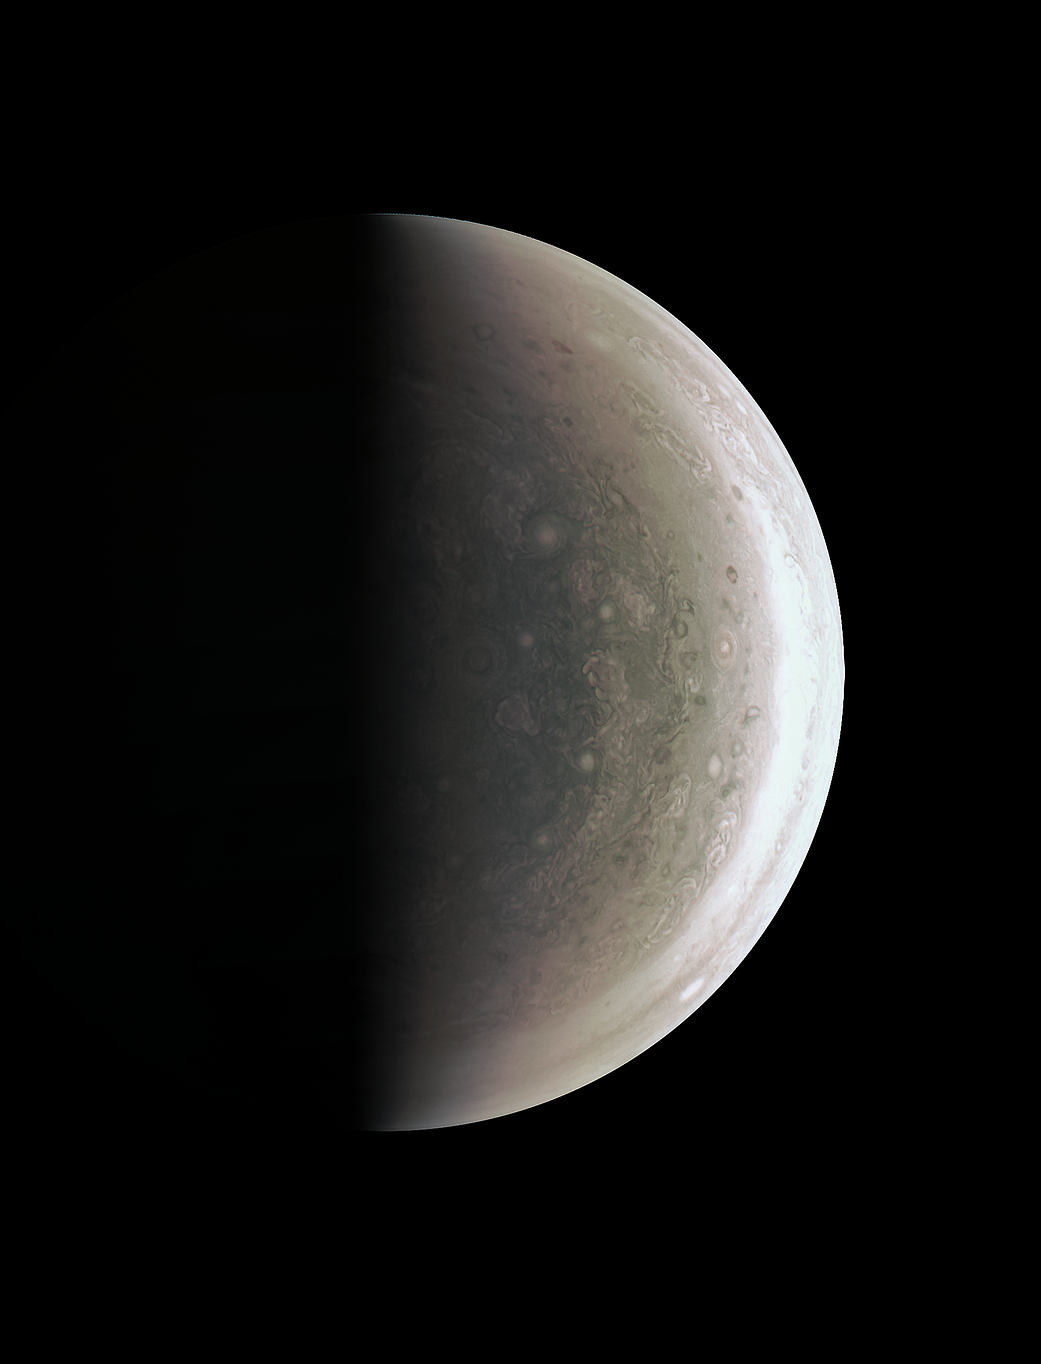 Jupiter's south polar region